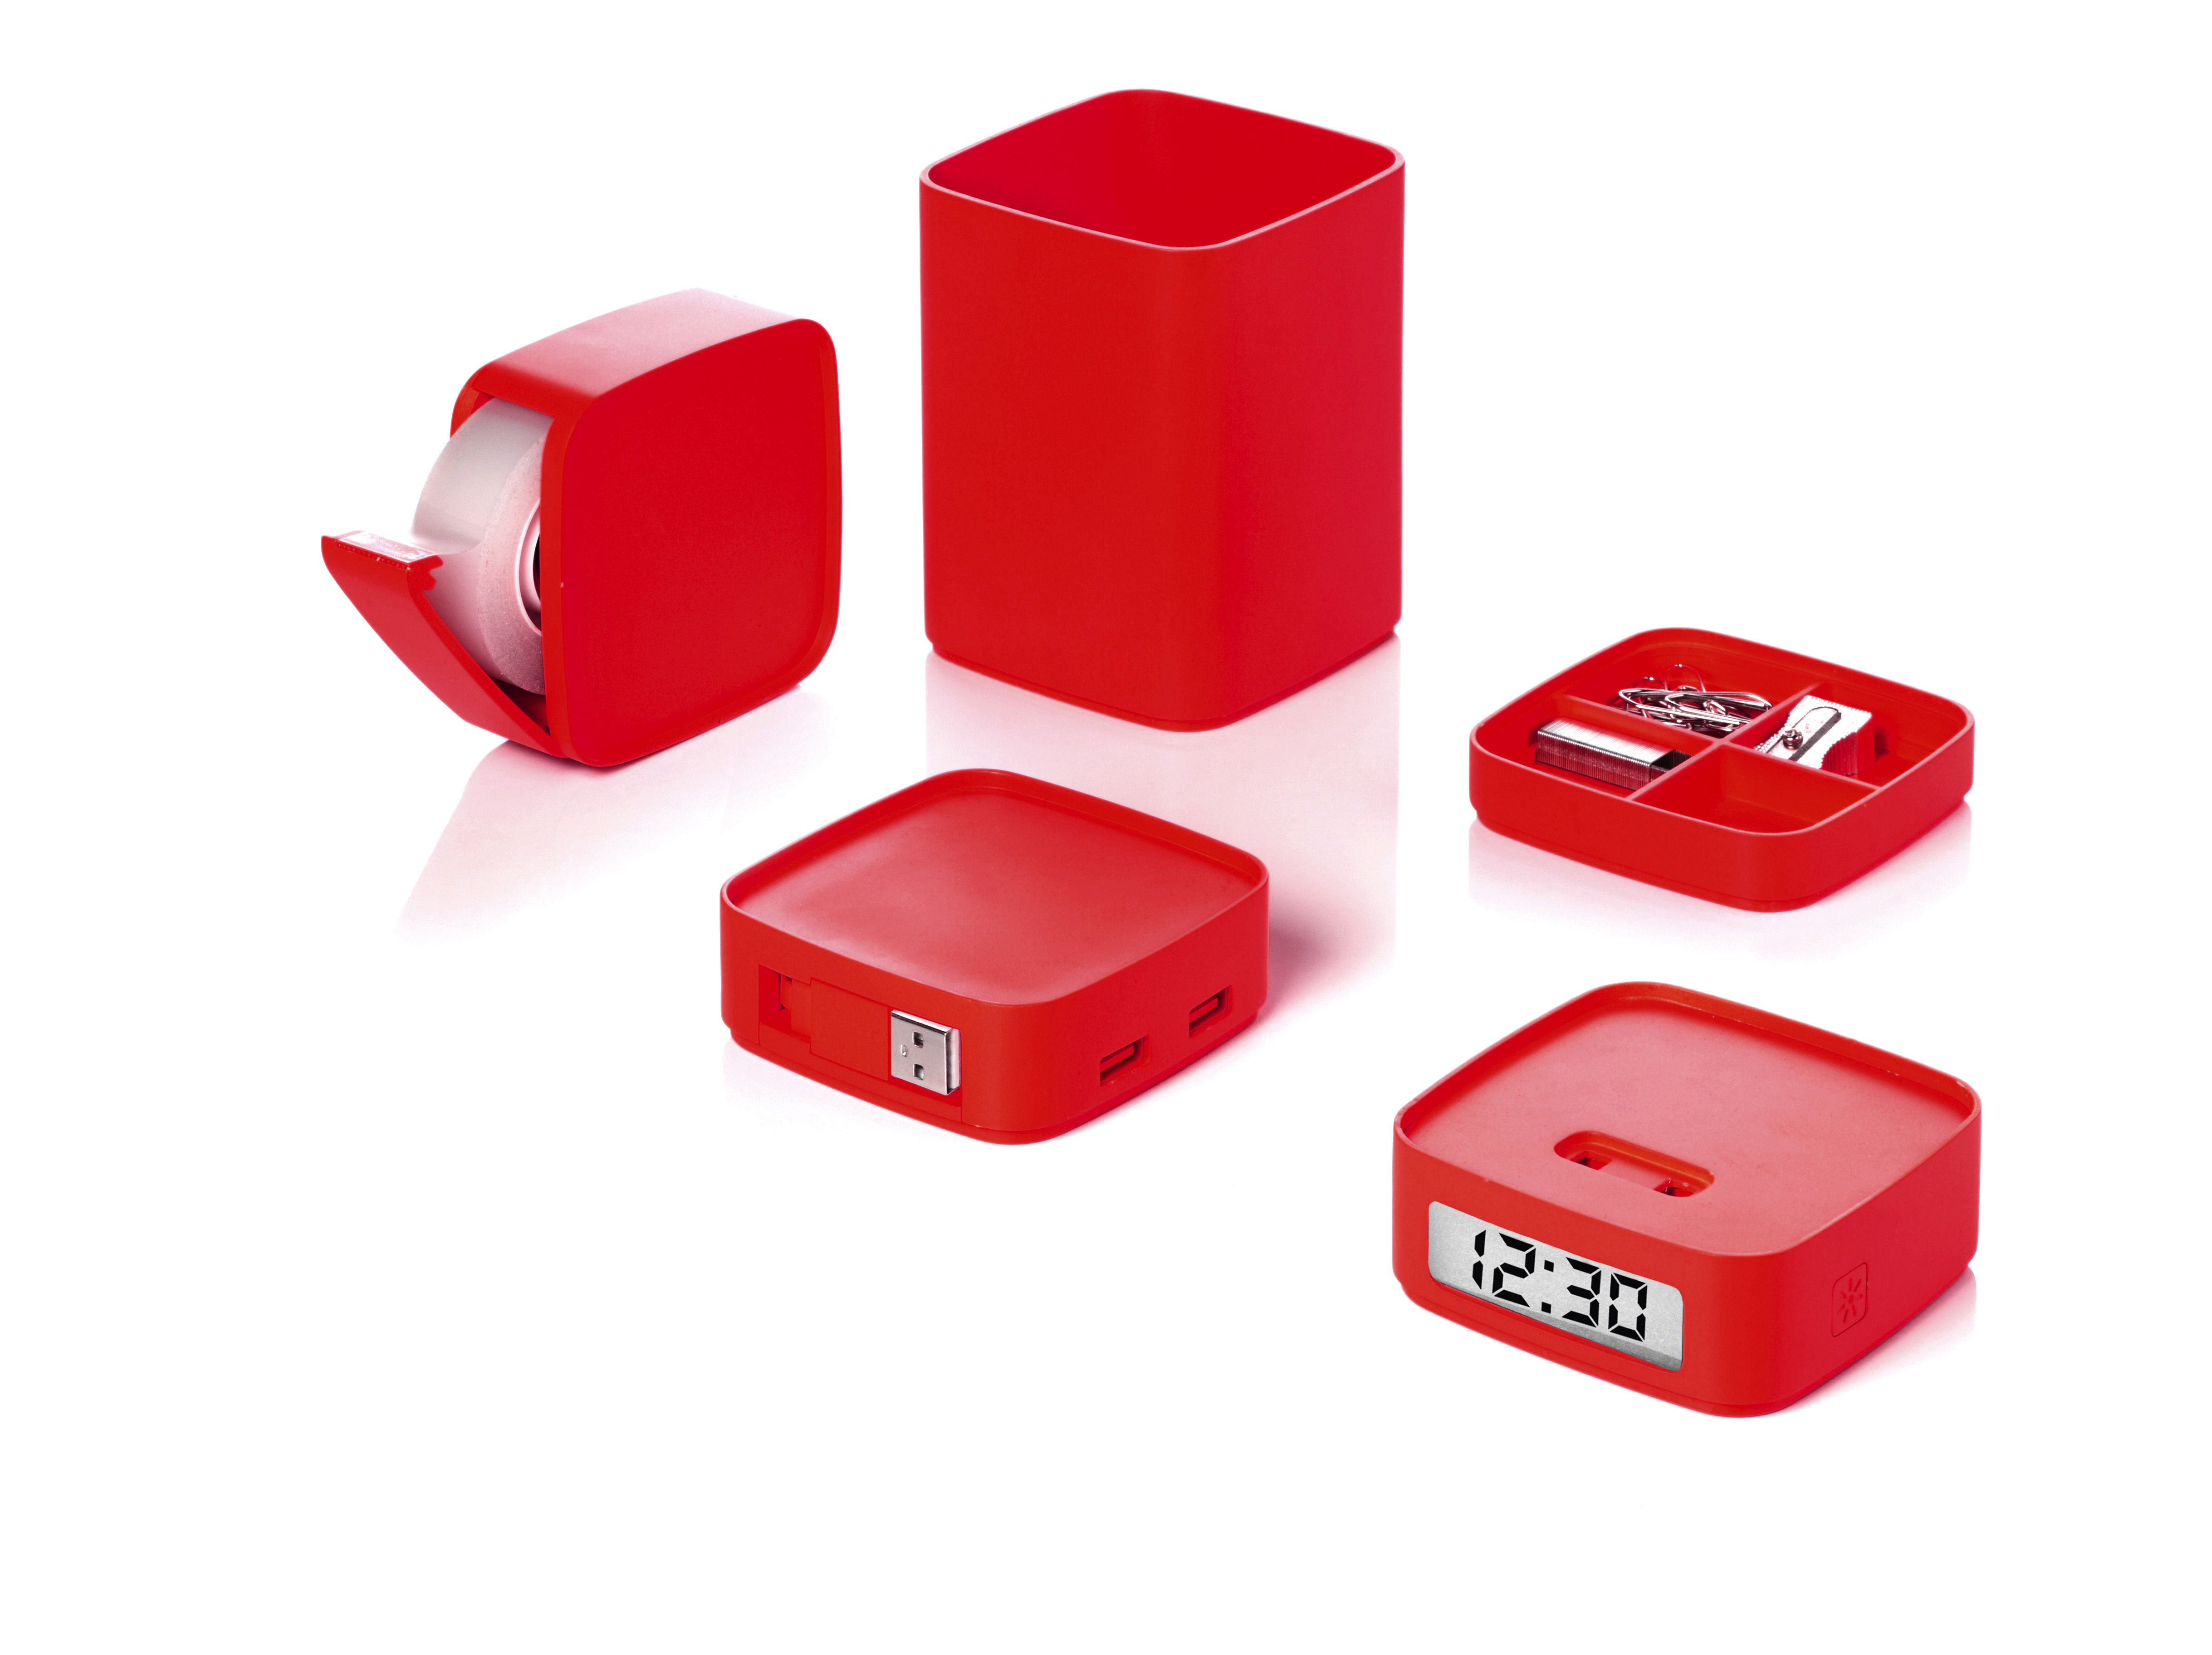 mini totem office accessory set 5 in 1 red by lexon. Black Bedroom Furniture Sets. Home Design Ideas